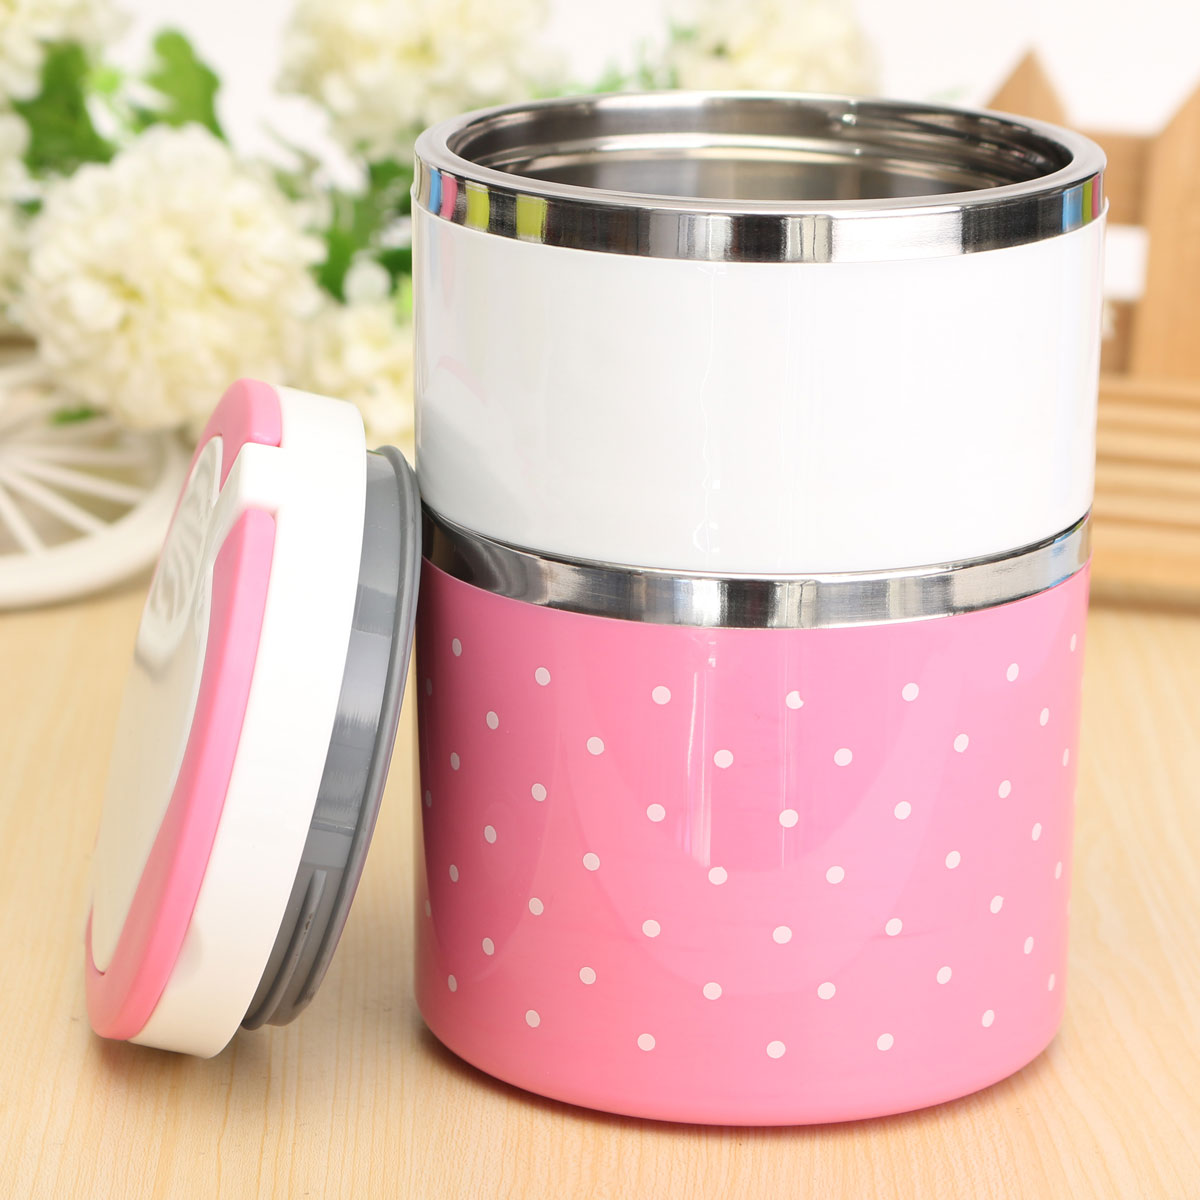 2 layer cute stainless steel lunch box insulation bento food picnic container pink export. Black Bedroom Furniture Sets. Home Design Ideas